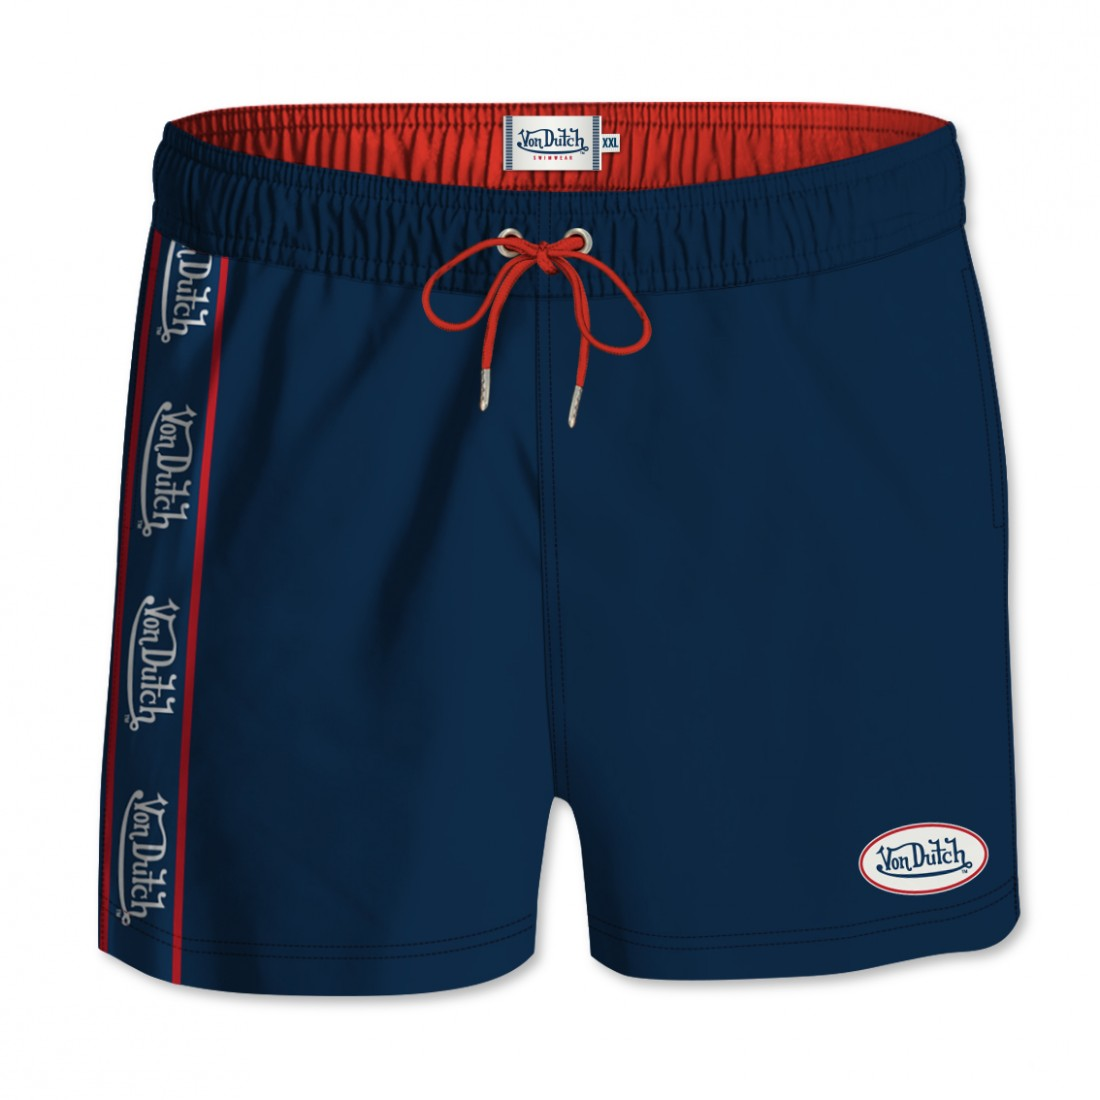 Von Dutch Men's Navy Blue Band's Board Short